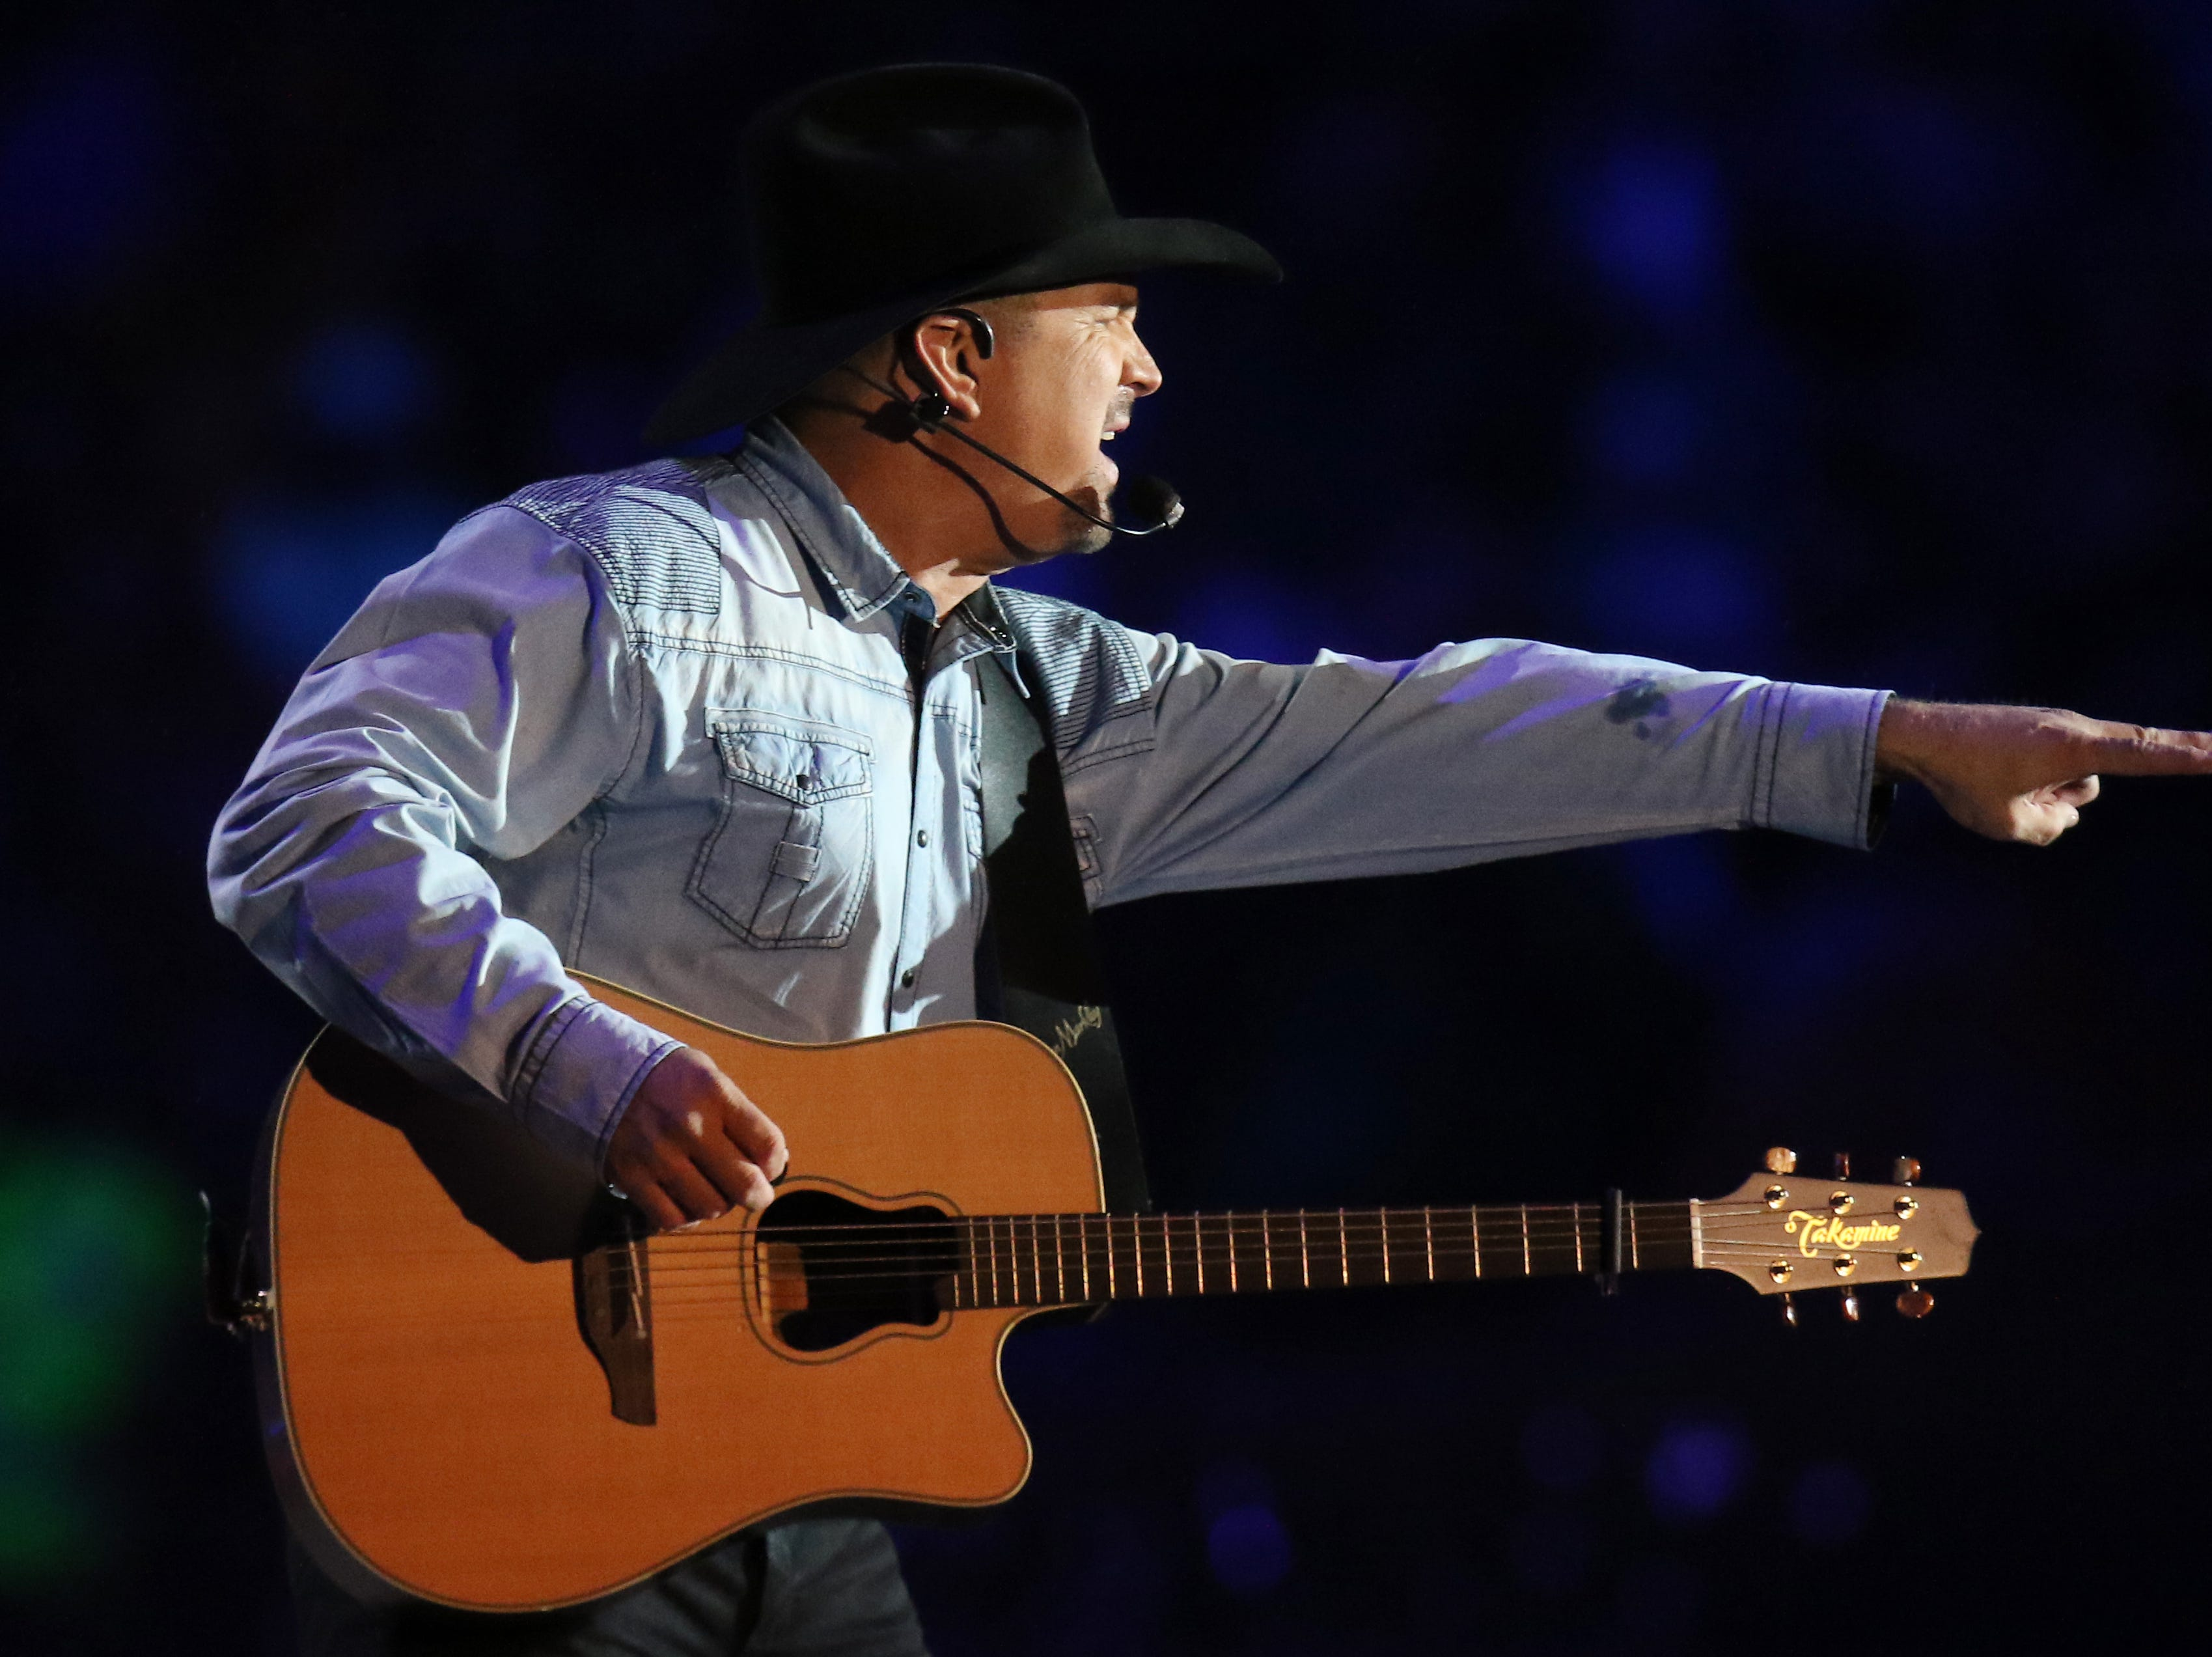 Garth Brooks performs at Notre Dame stadium for historic first-ever concert at Notre Dame Stadium in South Bend, Ind., on Saturday, Oct. 20, 2018.